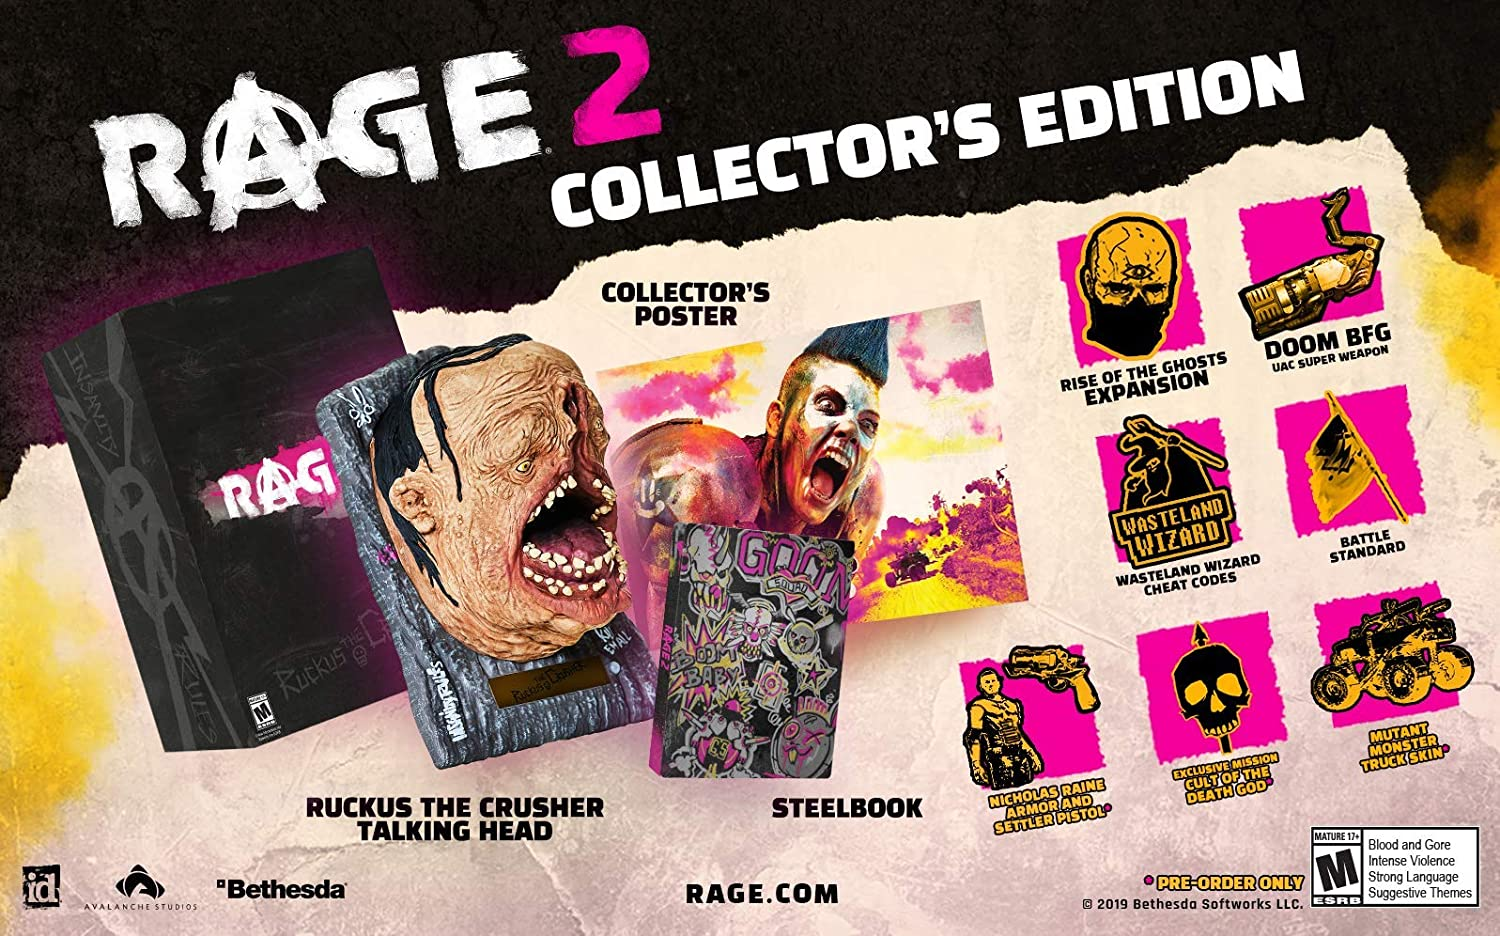 422302d1ab46 Amazon.com  Rage 2 Collector s Edition - PlayStation 4  Bethesda Softworks  Inc  Video Games